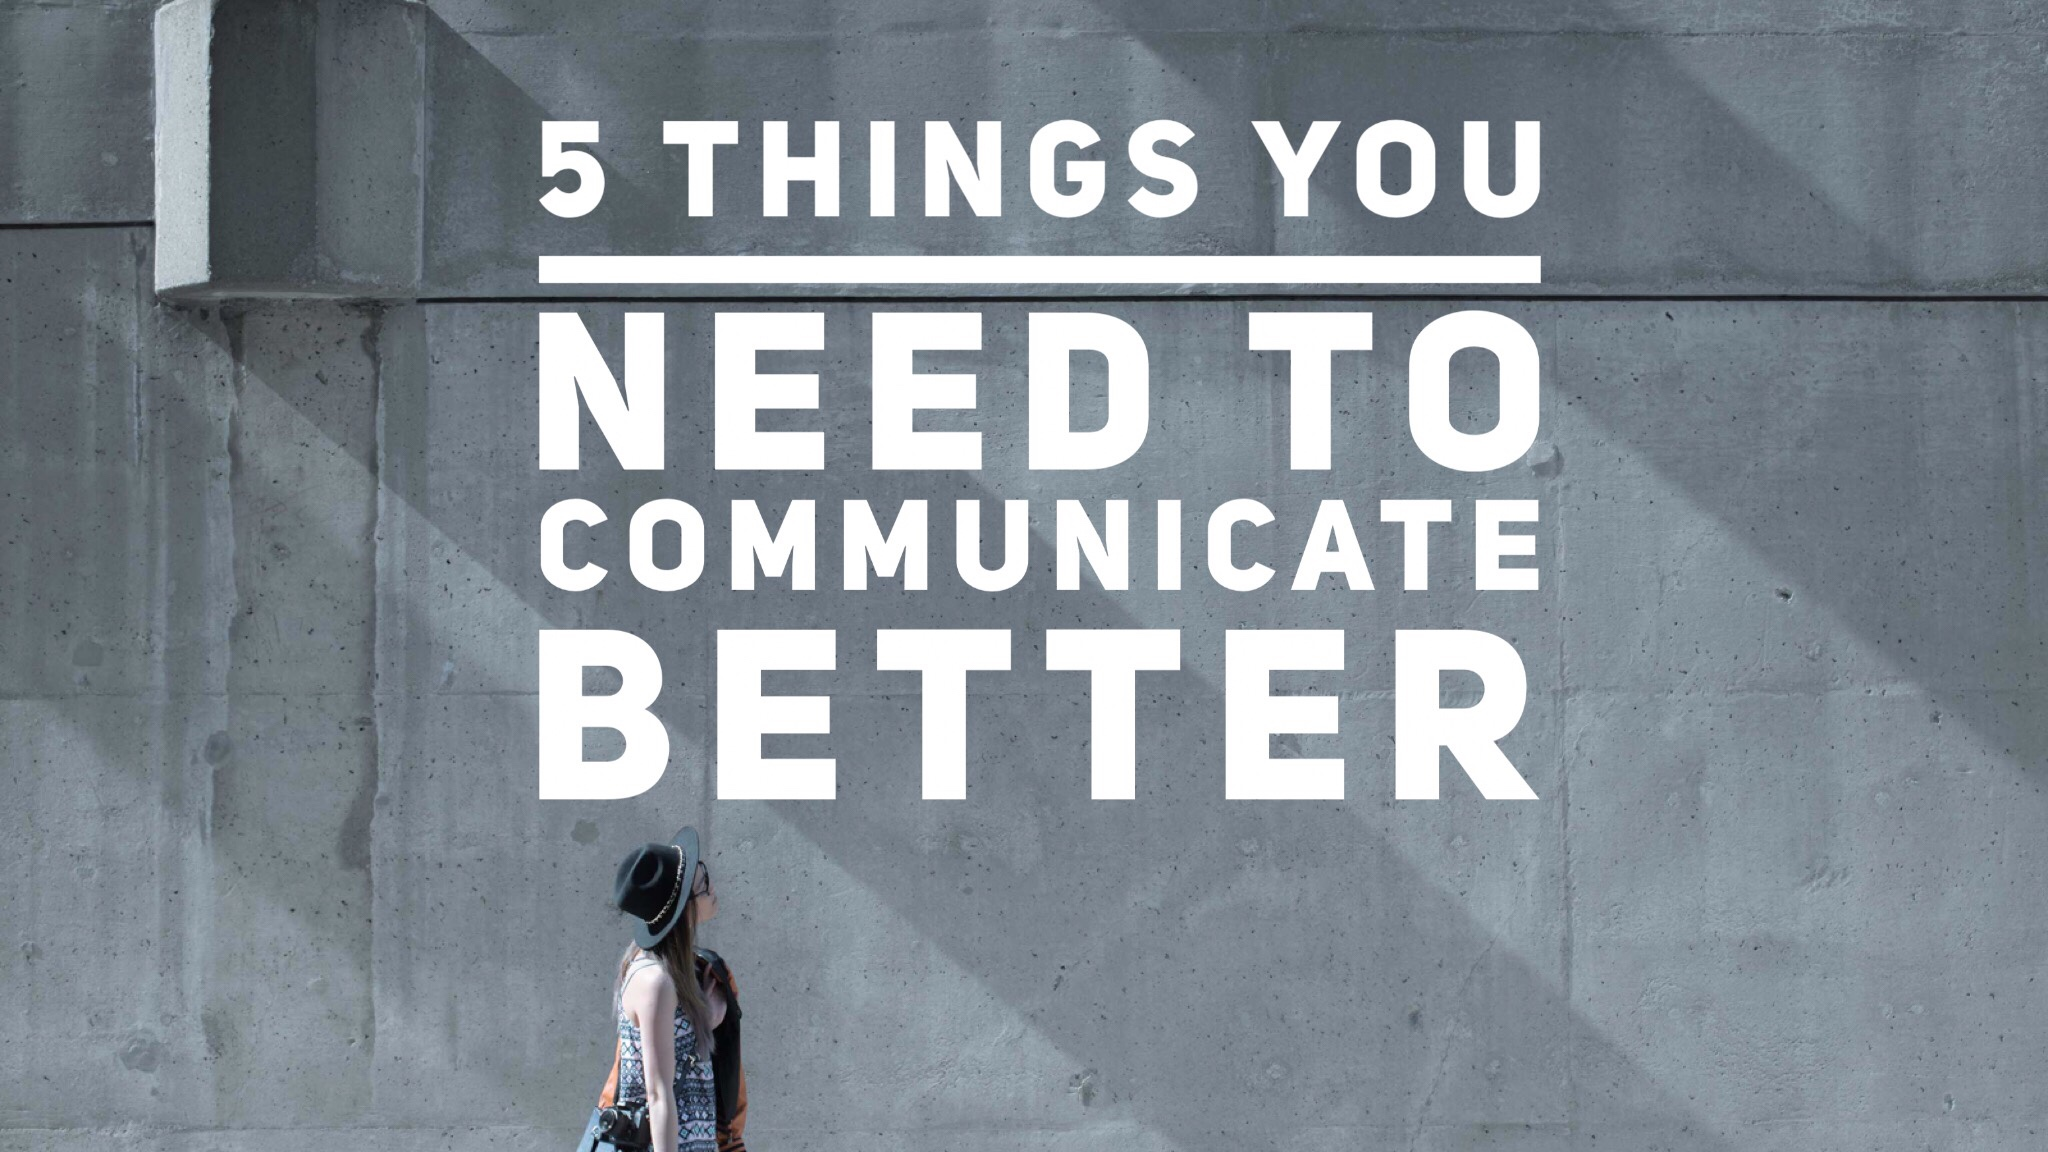 5 Things You Need to Communicate Better Bianca Valerio